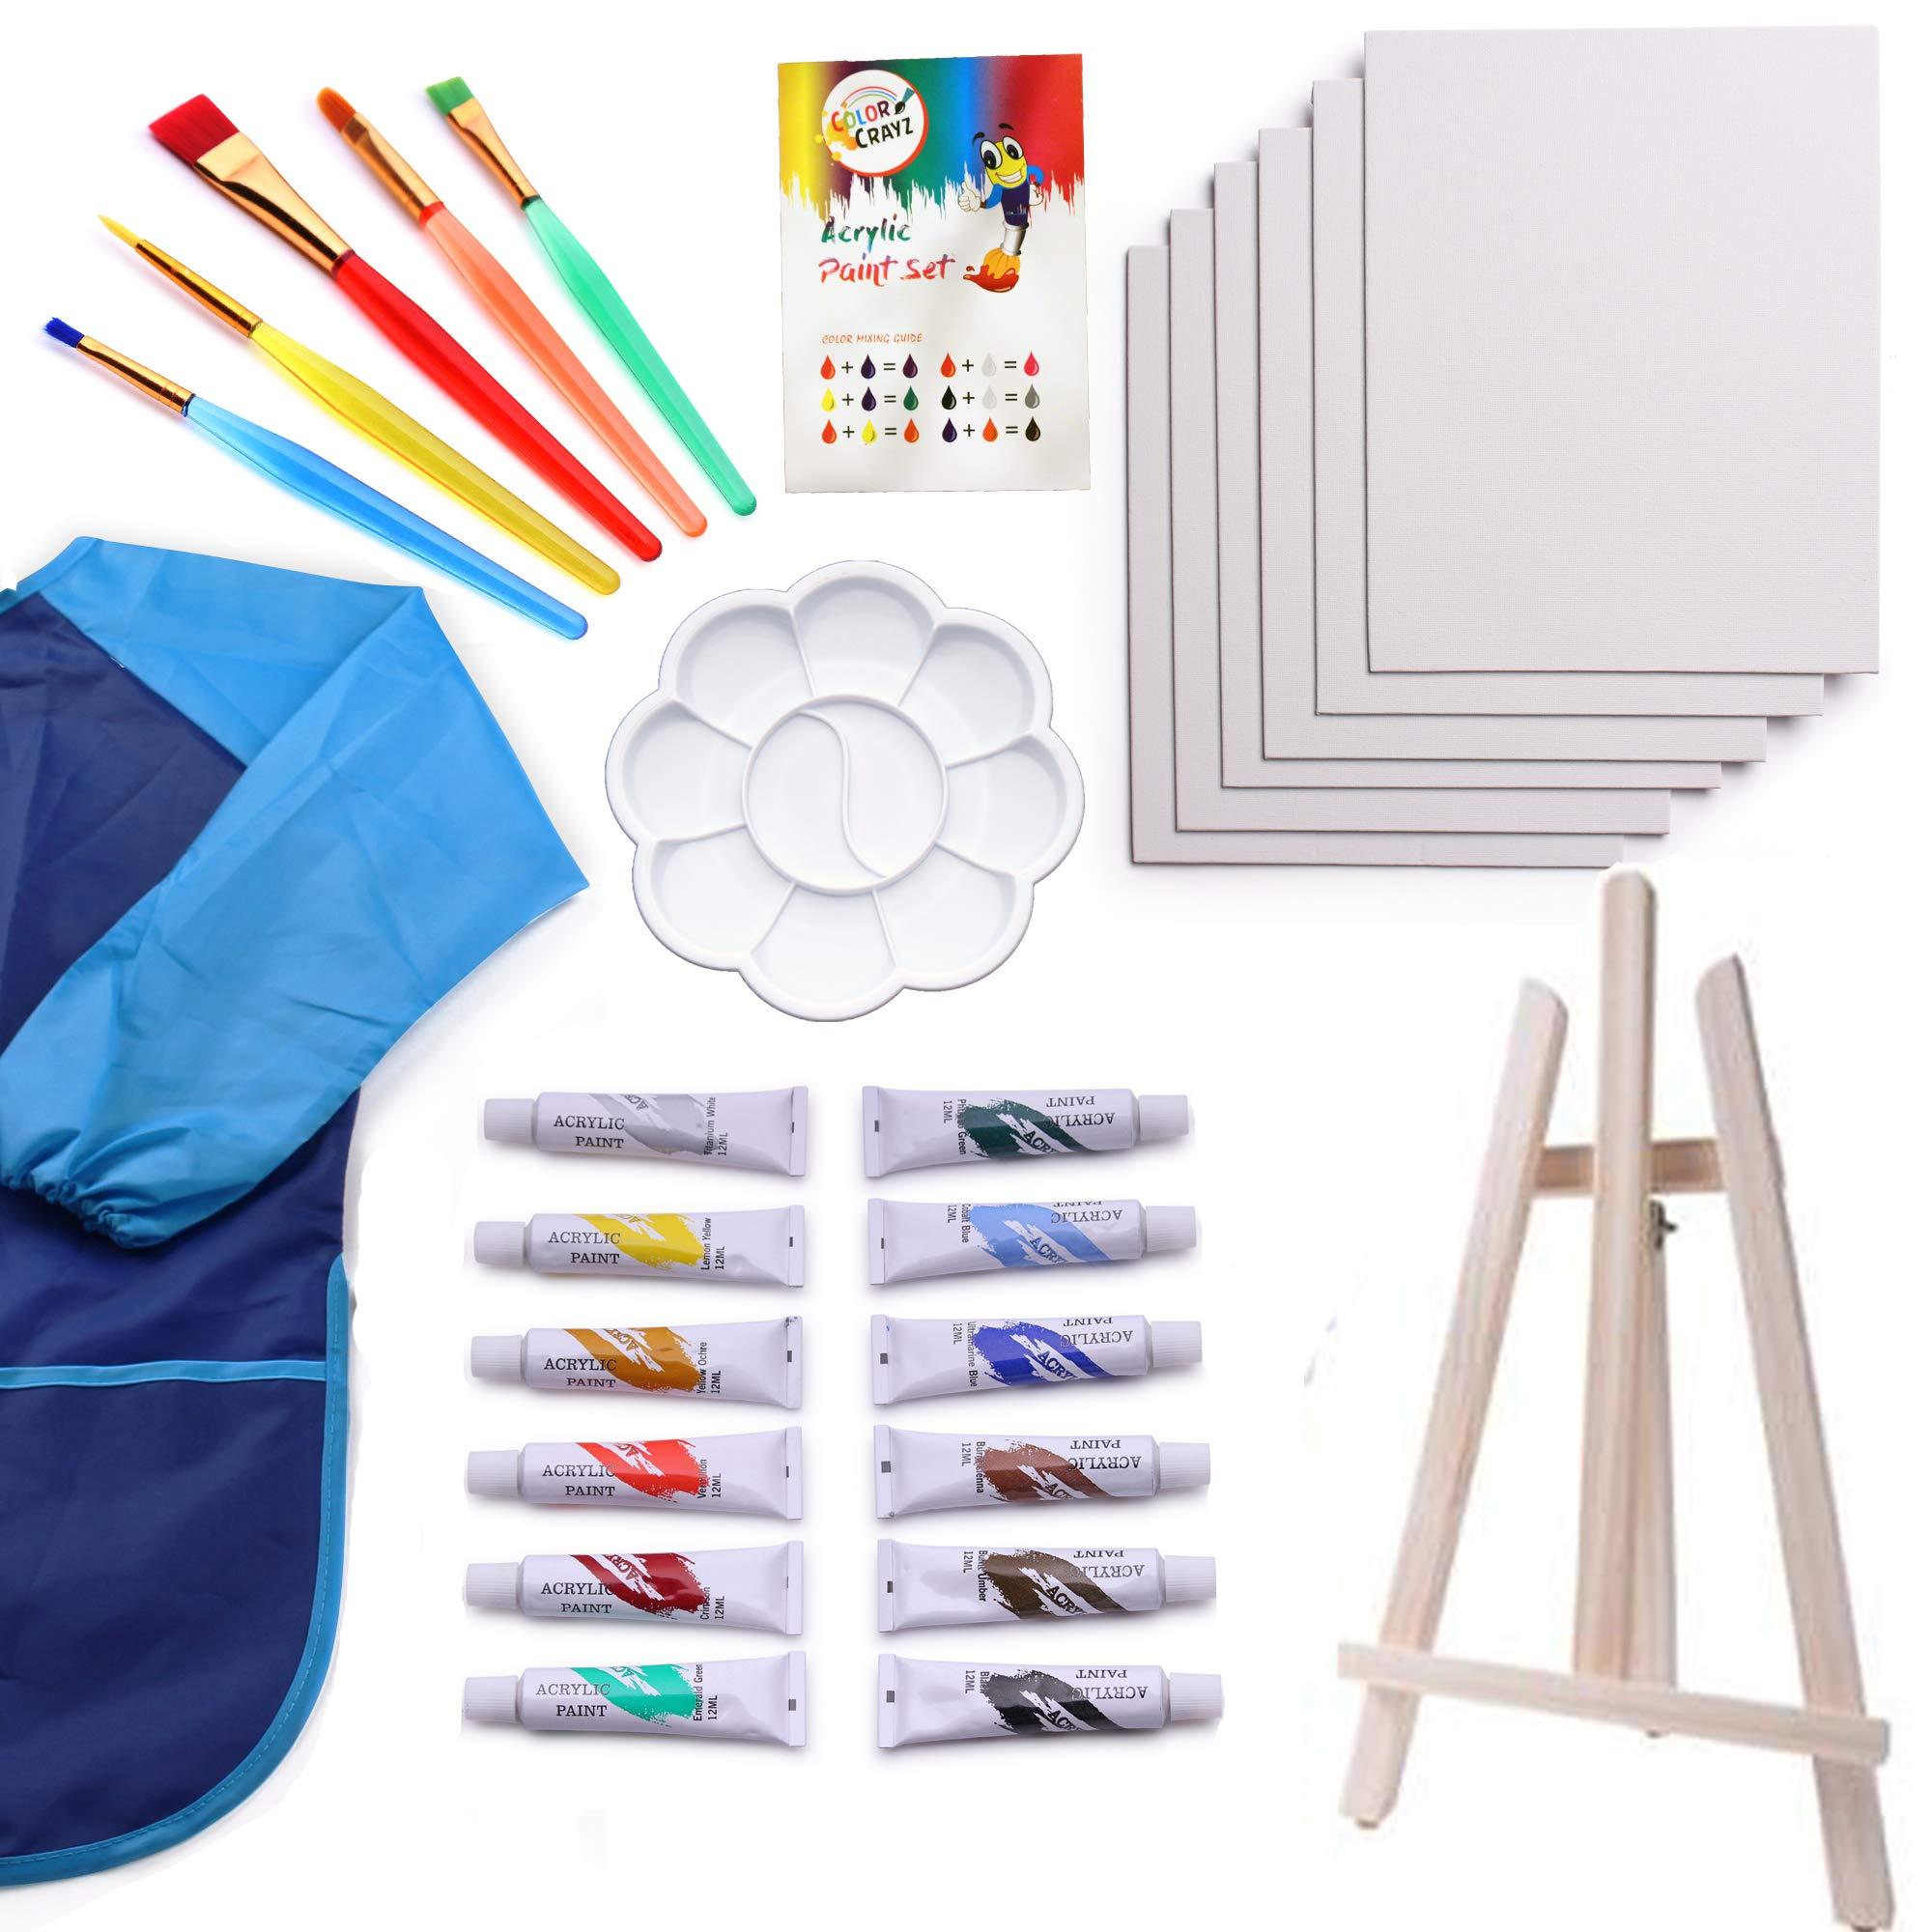 Kids Art Set | 27-Piece Acrylic Paint Set with 5 Paint Brushes 8x10 Painting Canvas Tabletop Easel & Bonus Art Smock Paint Palette Color Mixing Chart